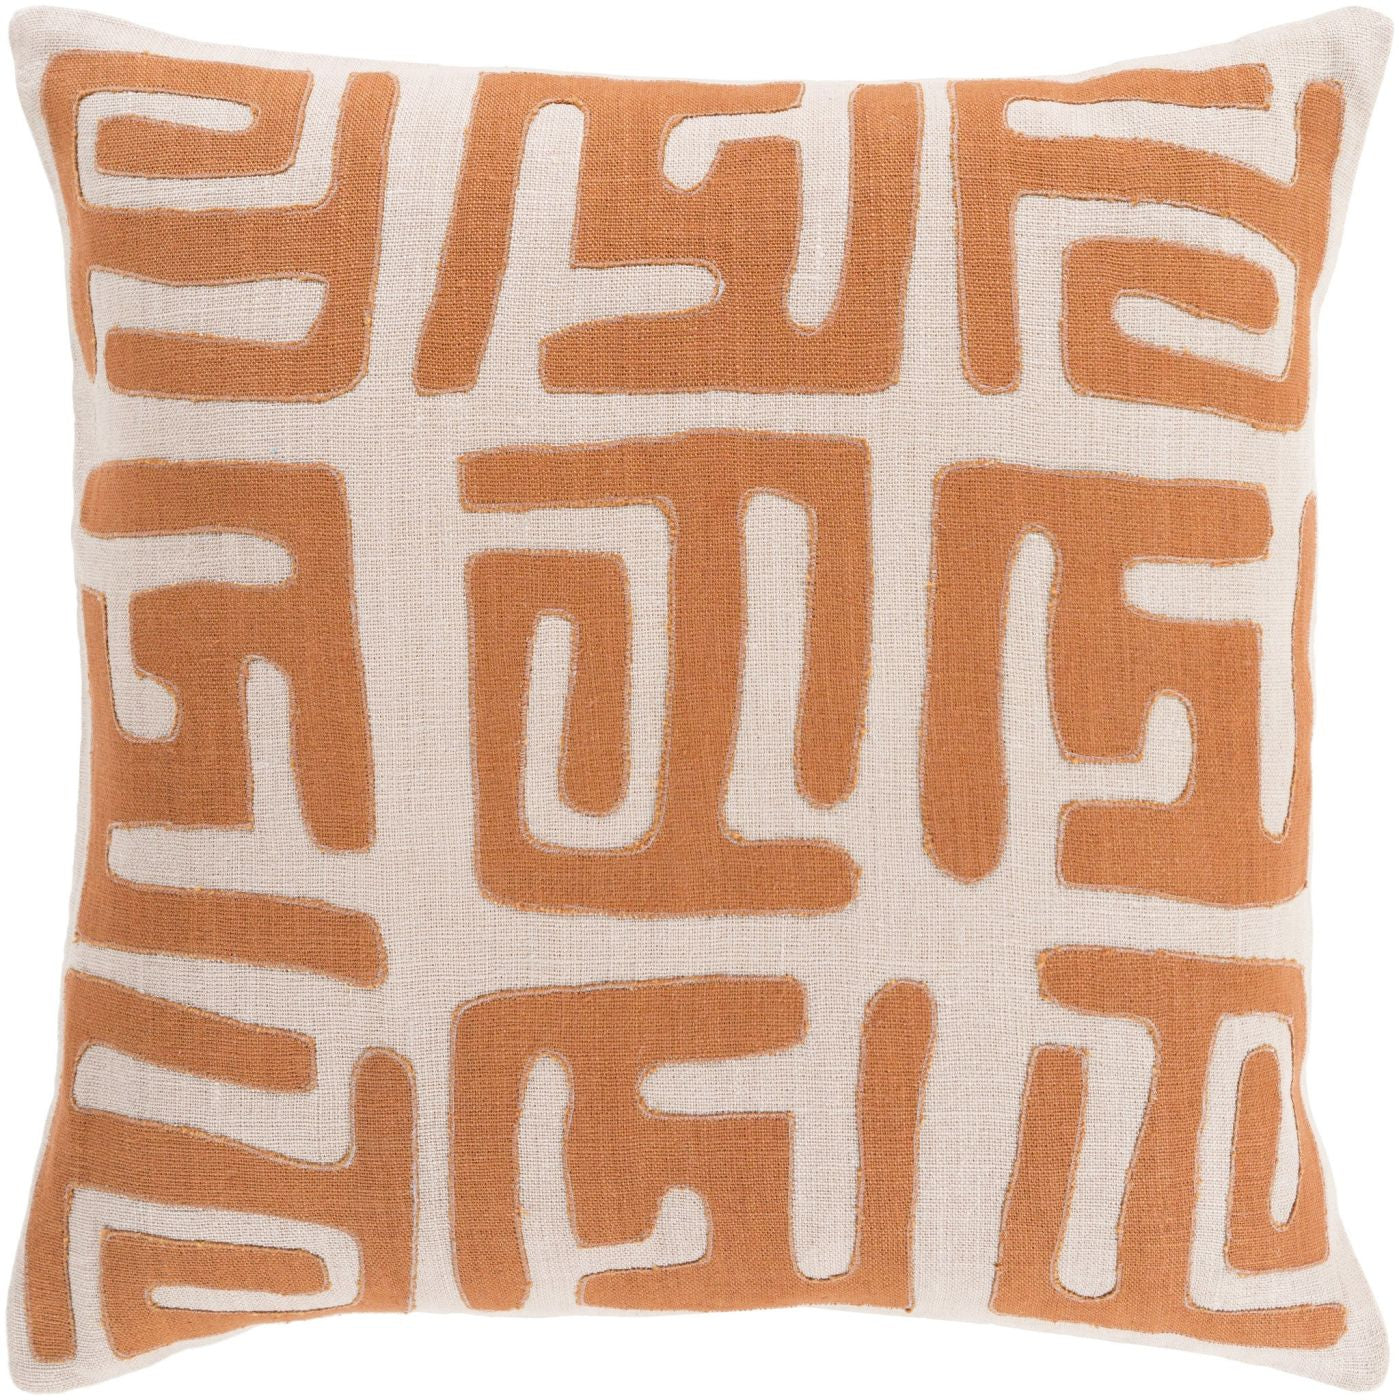 Surya Nairobi Throw Pillow Orange, Brown NRB004-1319D. Only $87.60 at Contemporary Furniture ...